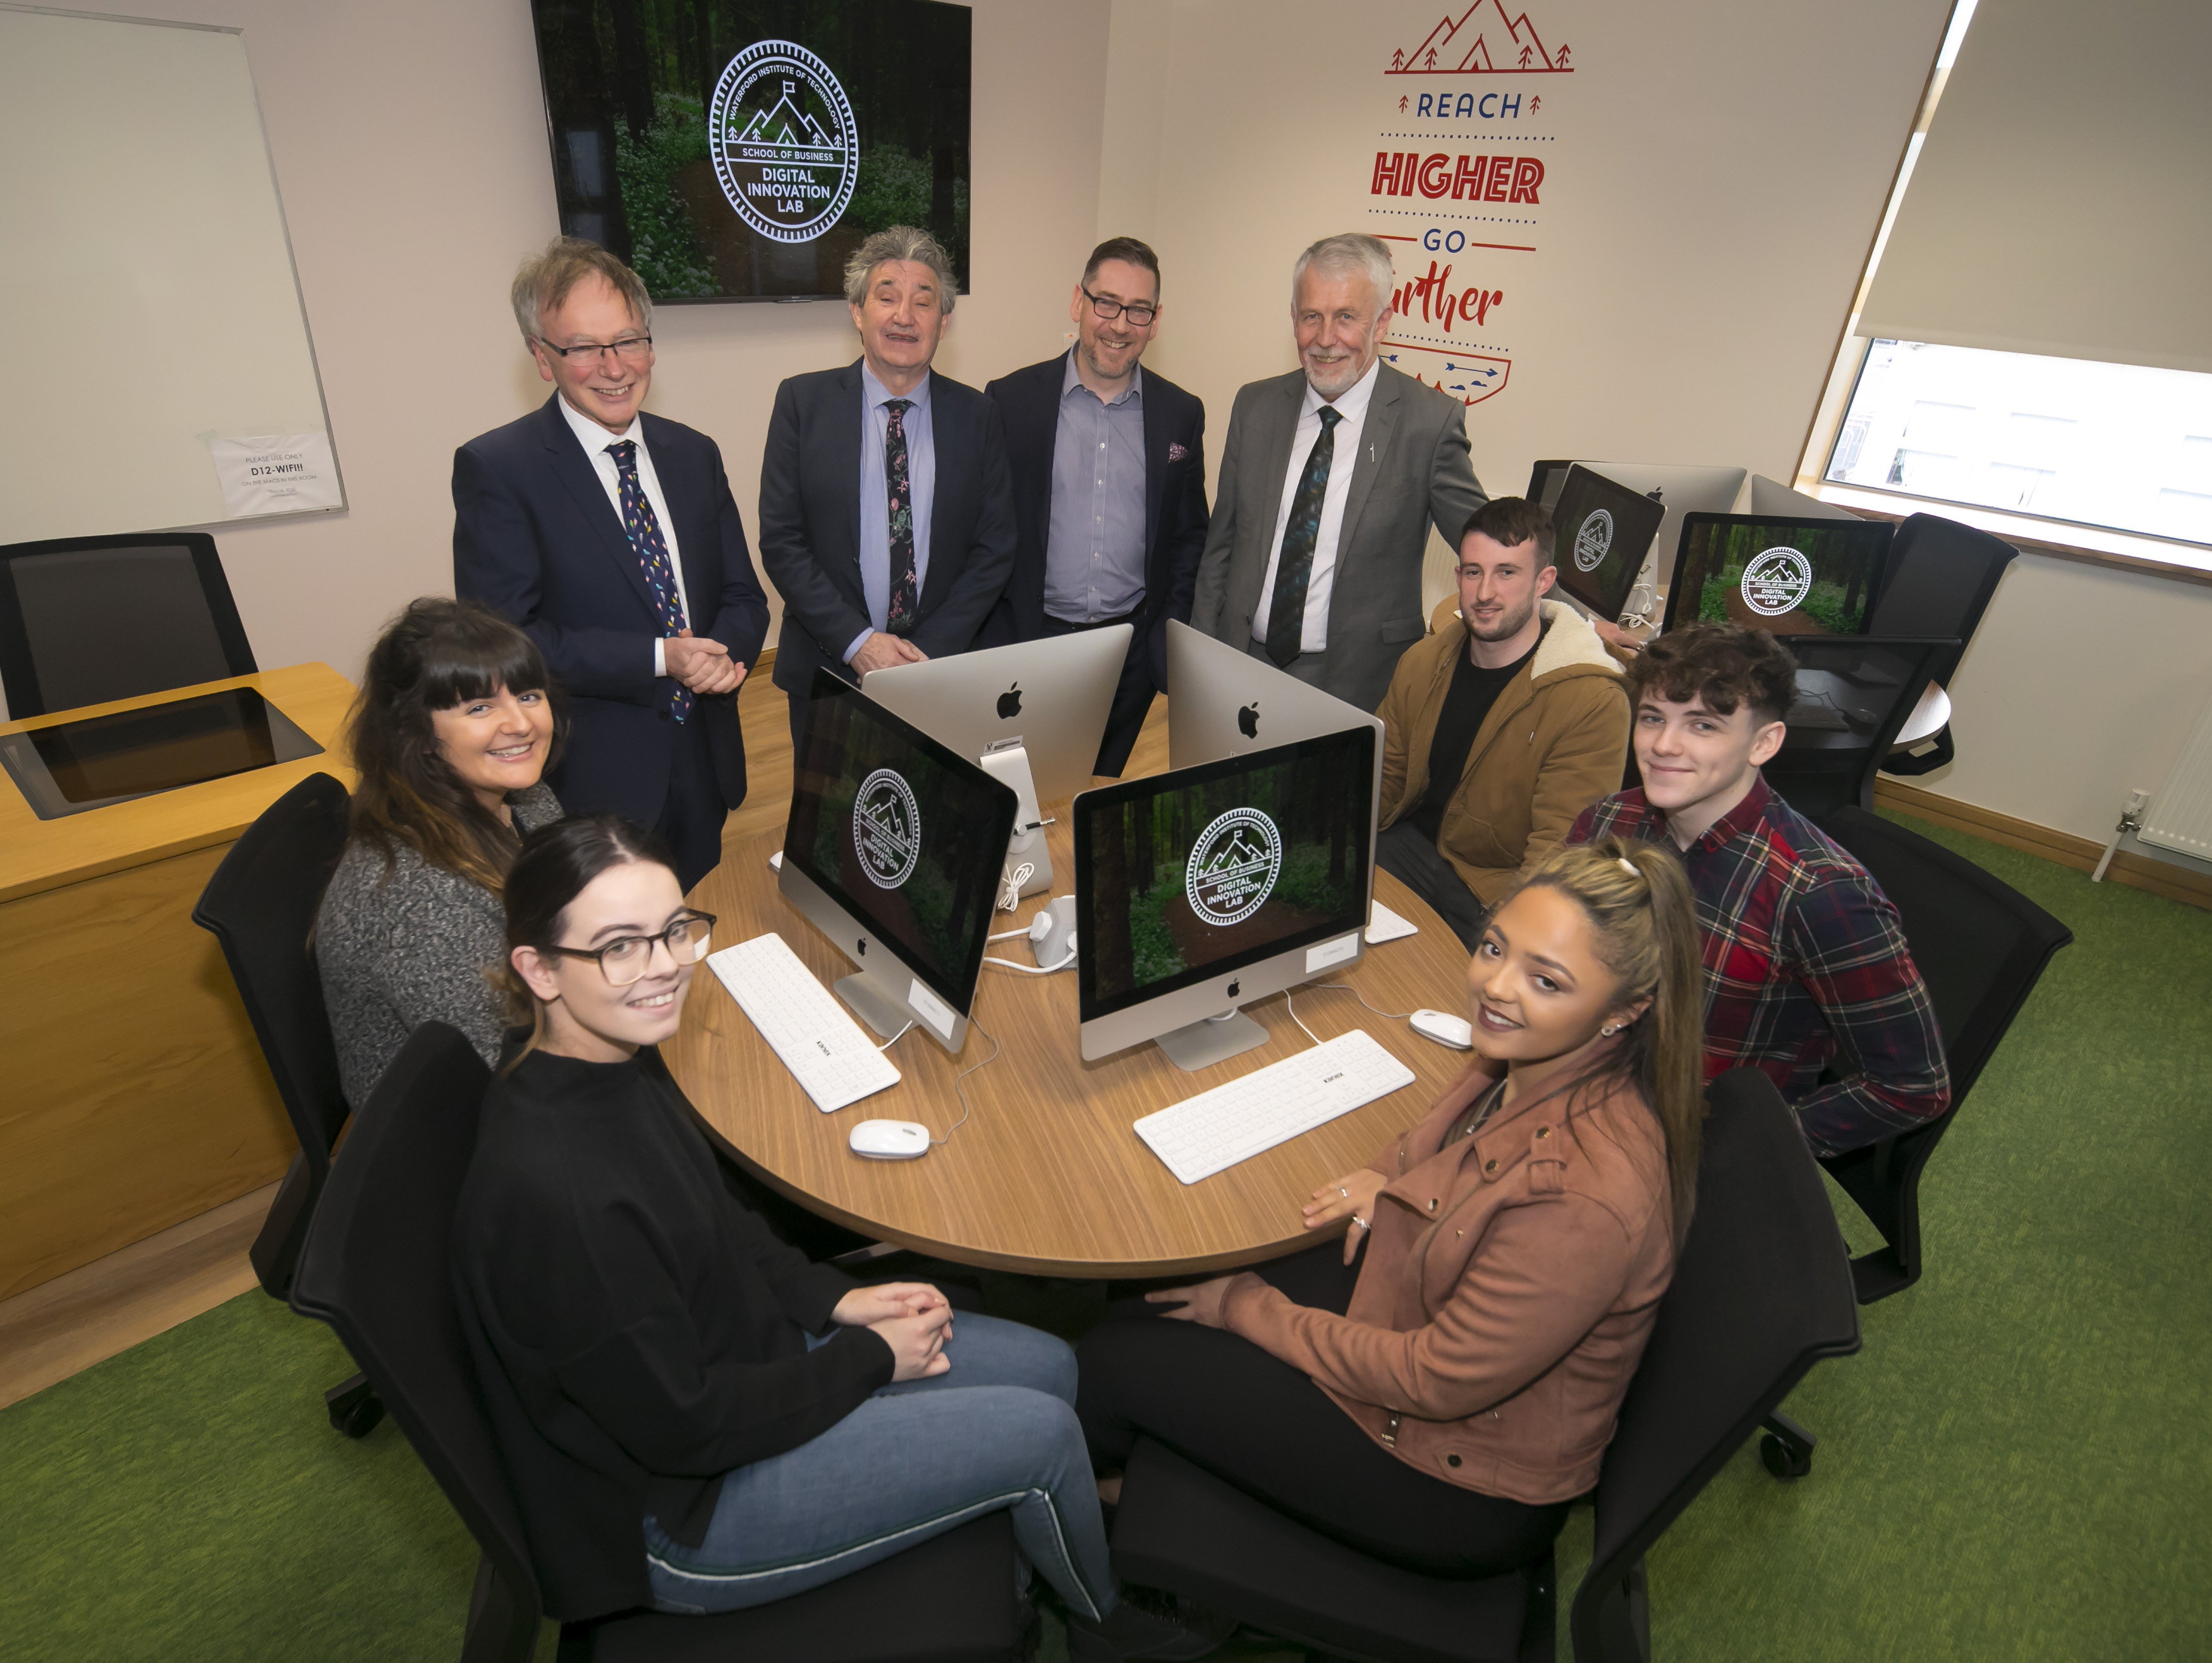 Salesforce is proud to be working with Waterford Institute of Technology to sponsor a new Digital Innovation Lab for digital marketing students within the Institute's School of Business.